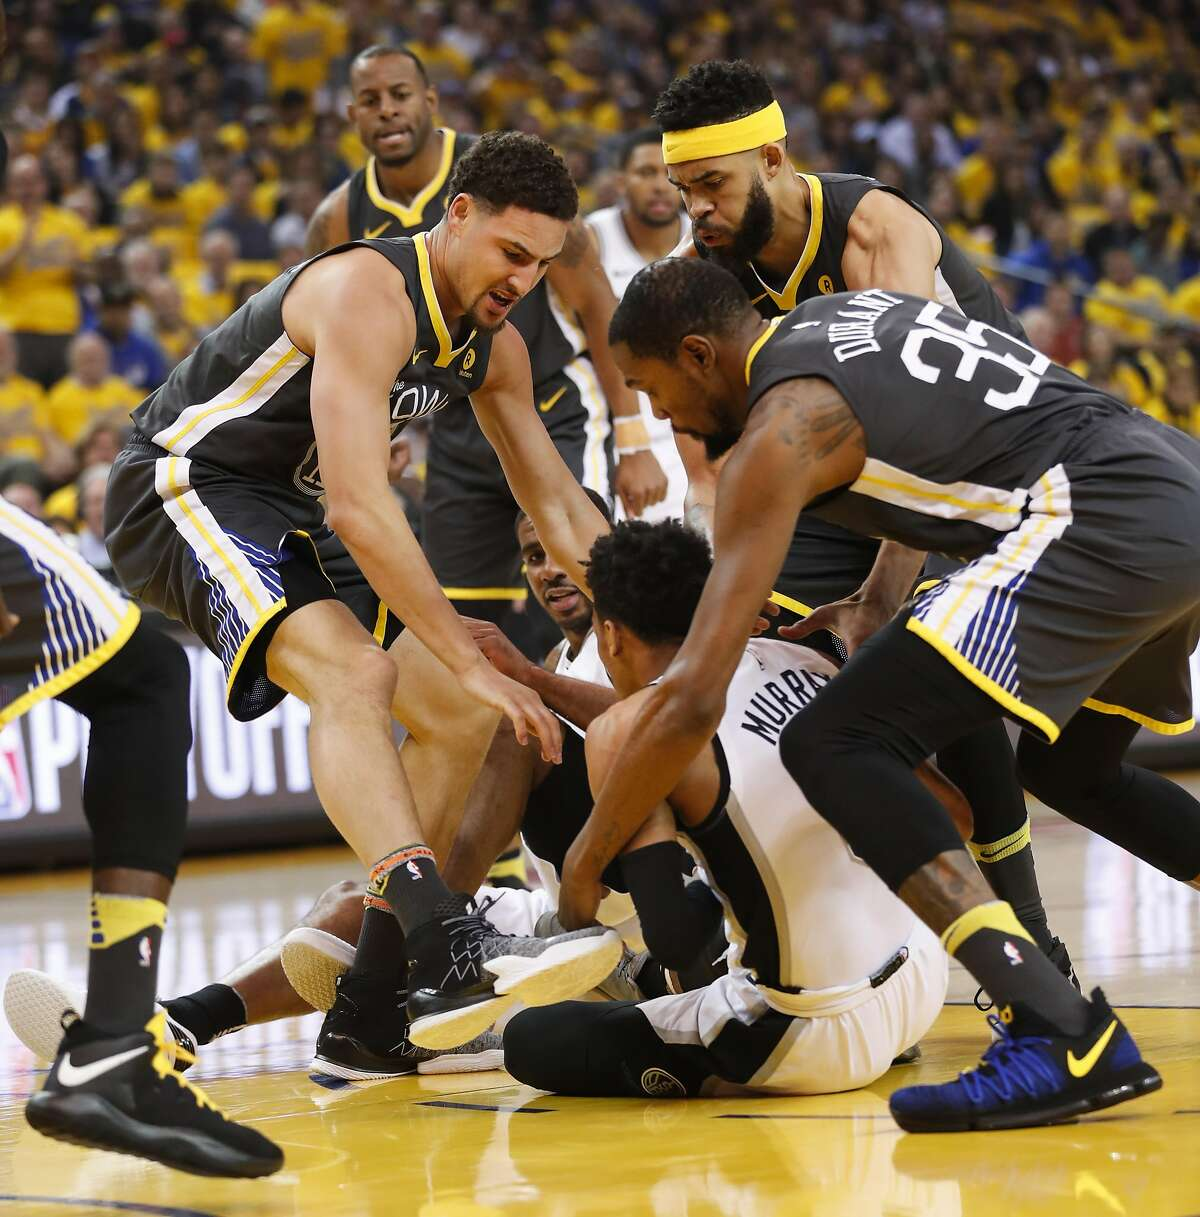 Golden State Warriors' Klay Thompson, JaVale McGee and Kevin Durant surround San Antonio Spurs' Dejounte Murray in the first quarter during game 2 of round 1 of the Western Conference Finals at Oracle Arena on Monday, April 16, 2018 in Oakland, Calif.